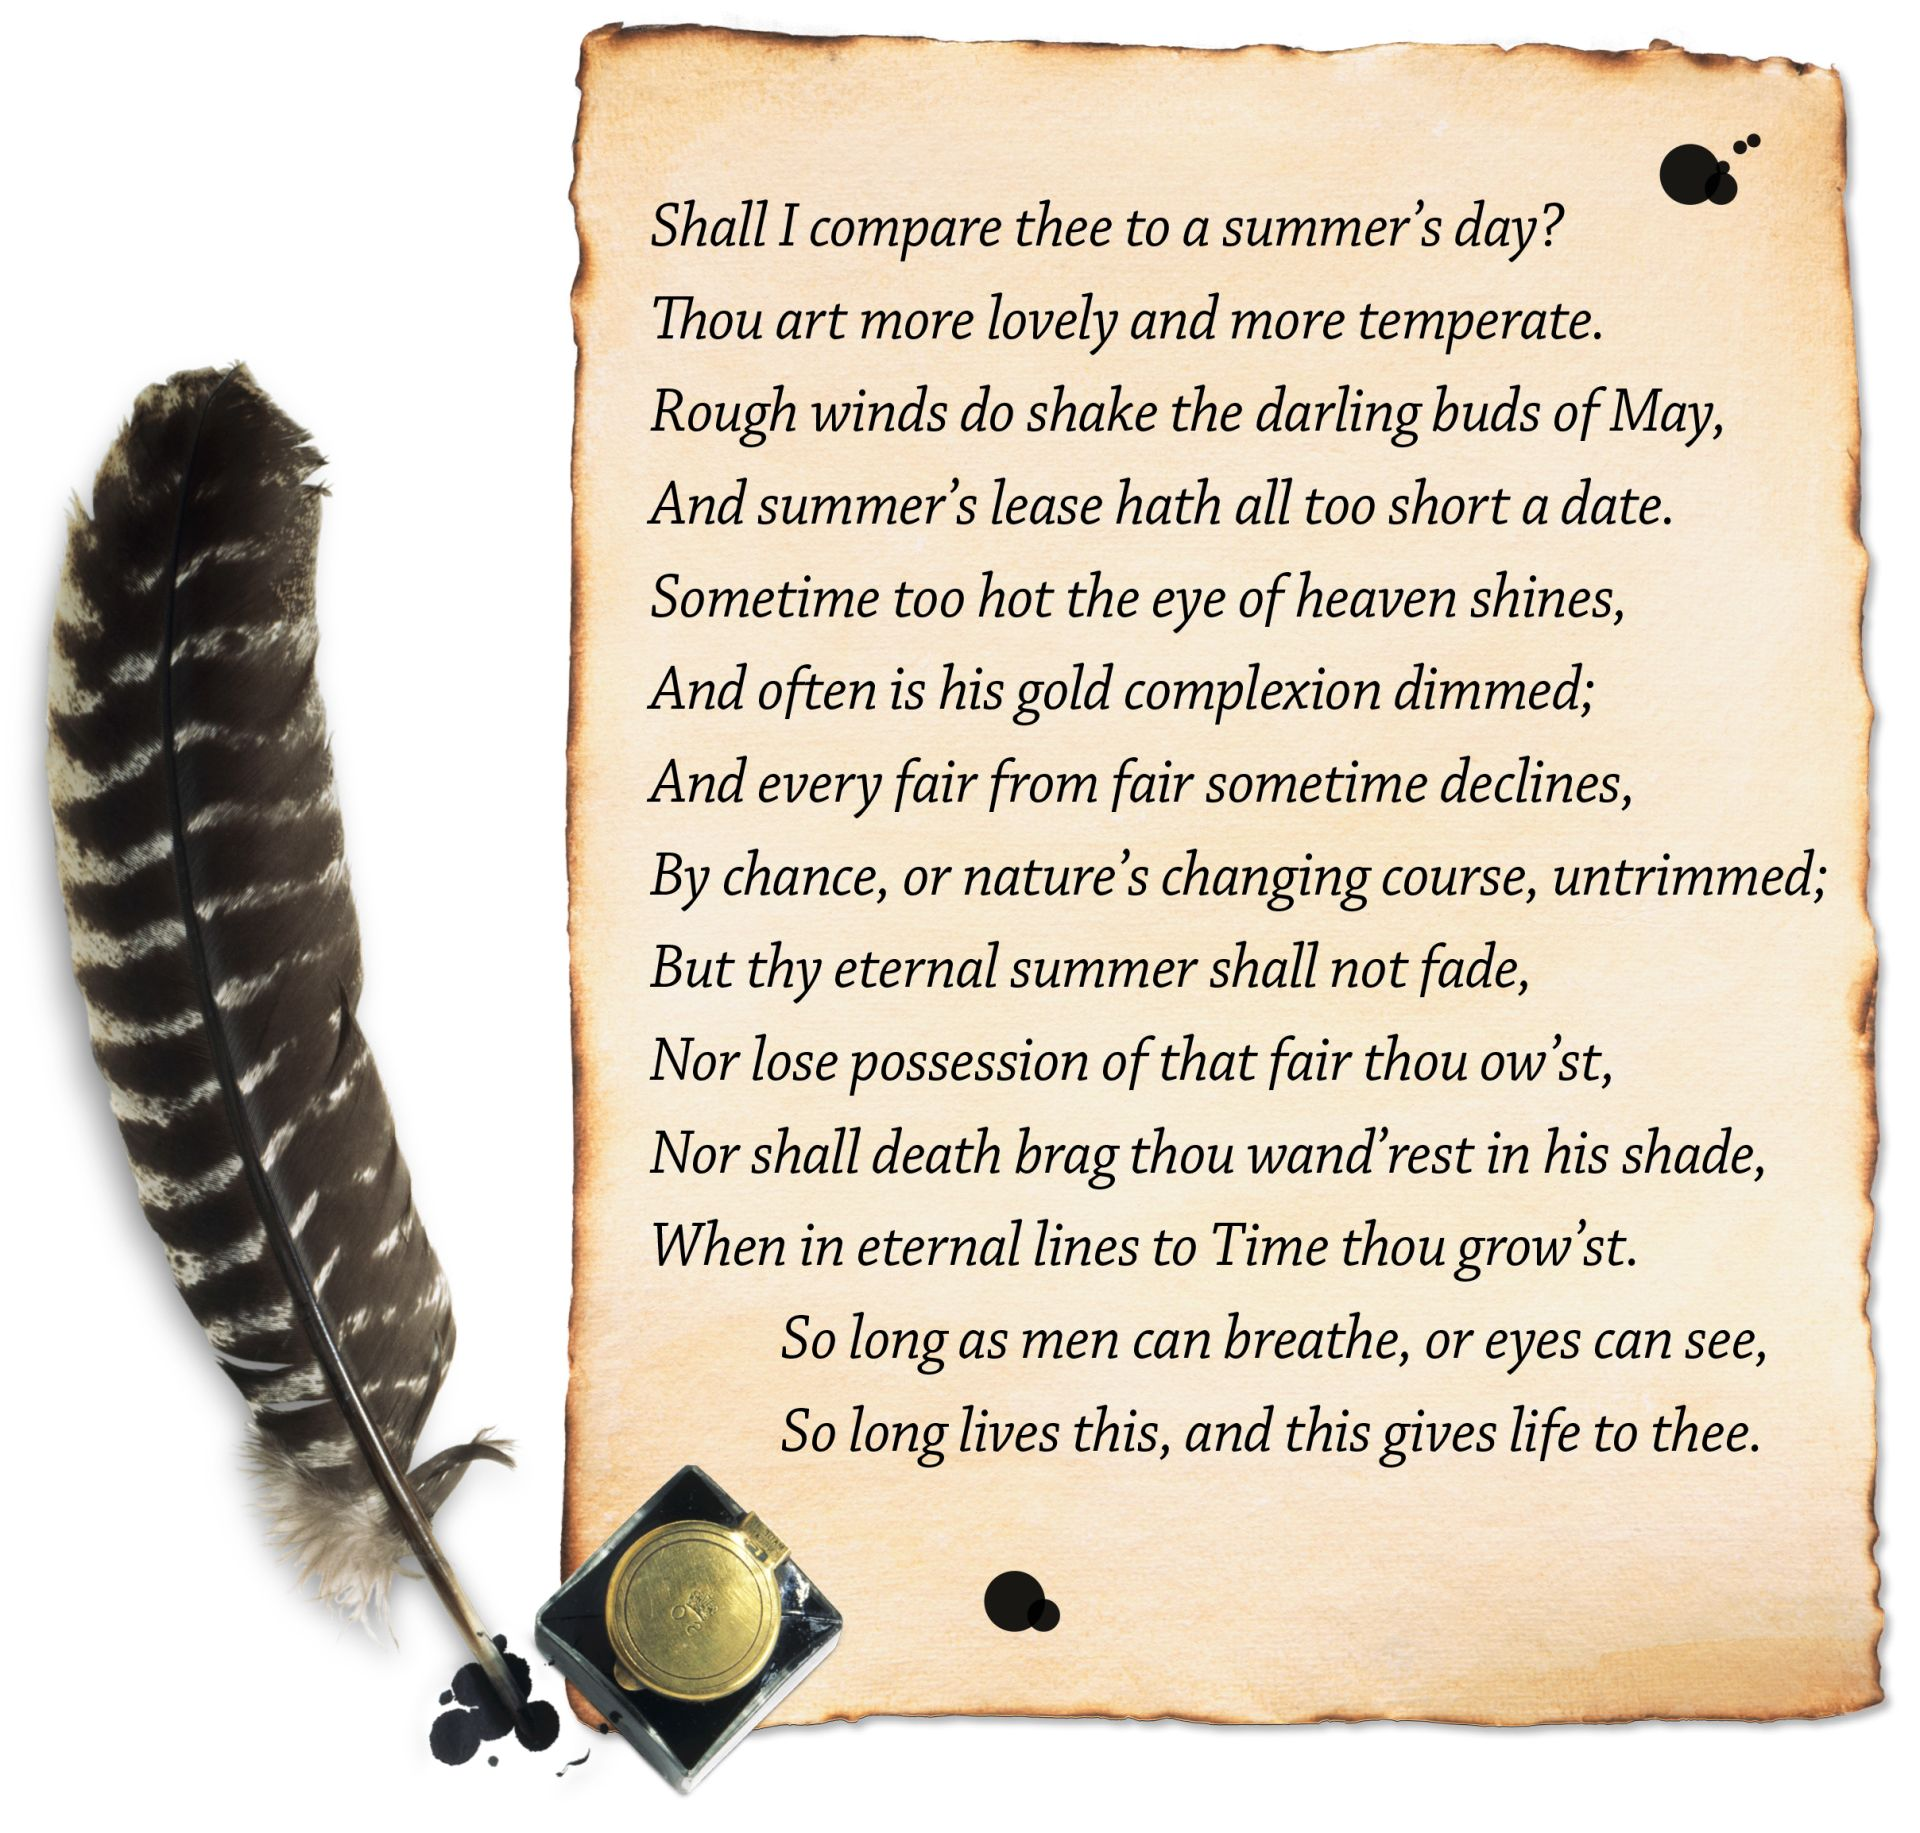 shakespeares sonnets Shakespeare's sonnets are considered to be among the most romantic poems ever written explore a selection of the very best among them.